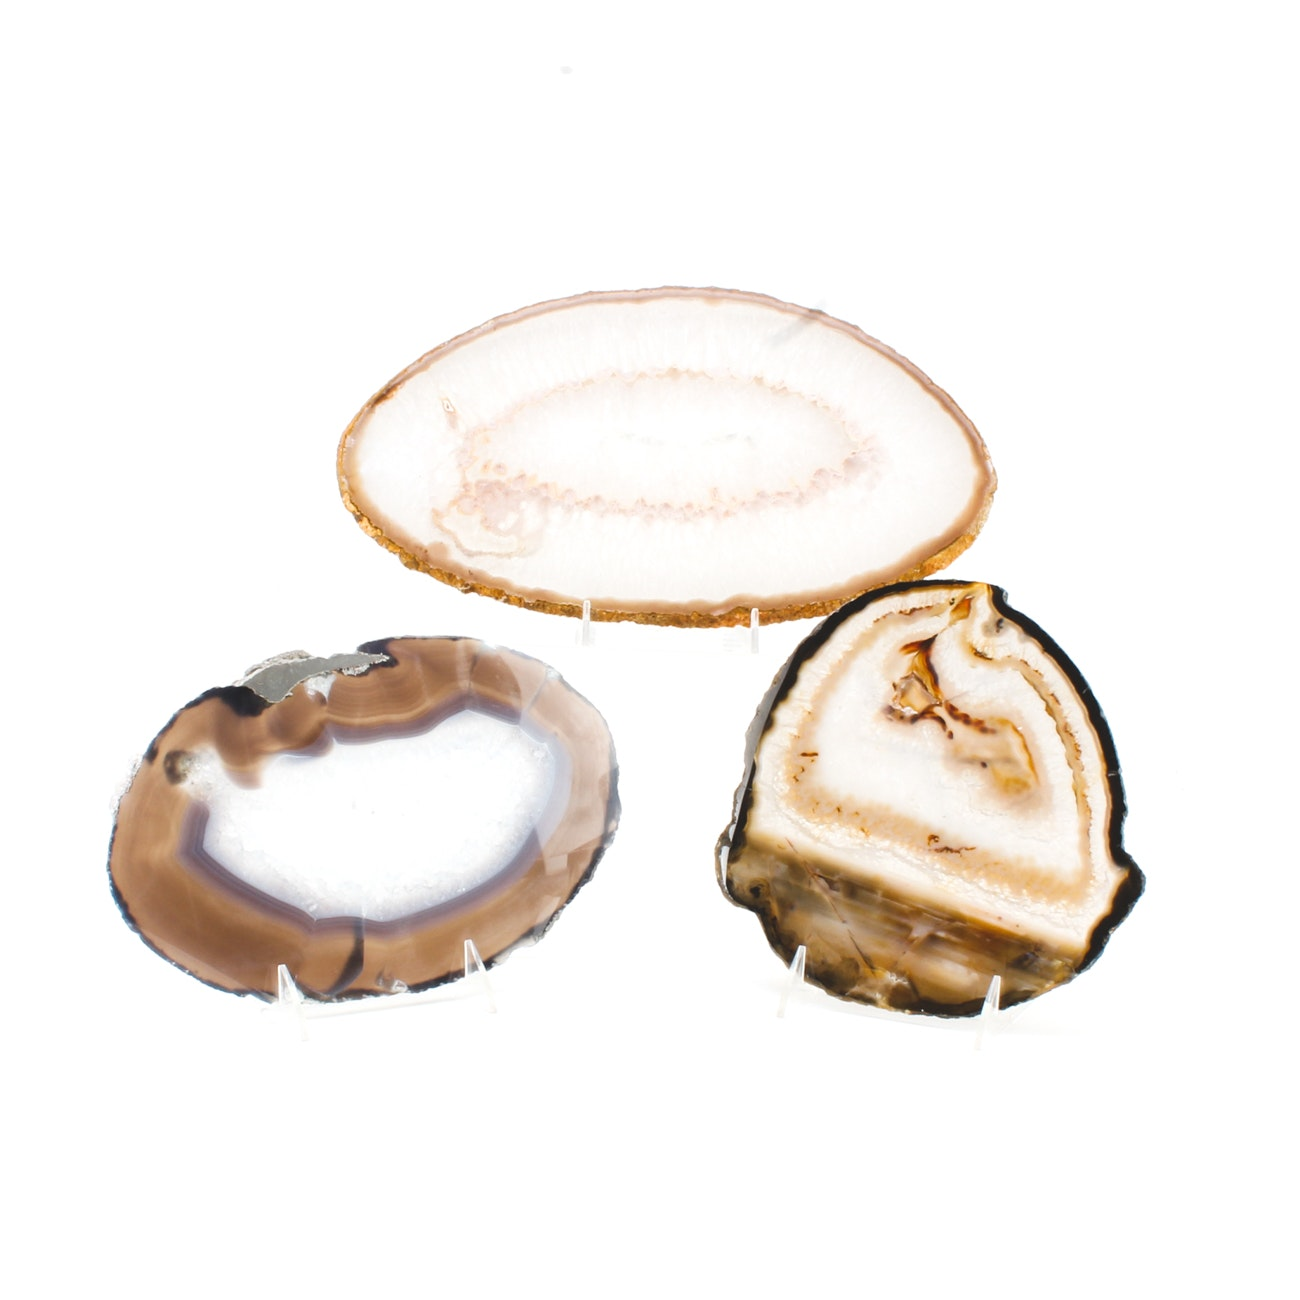 Collection of Three Agate Geode Cross-Sections